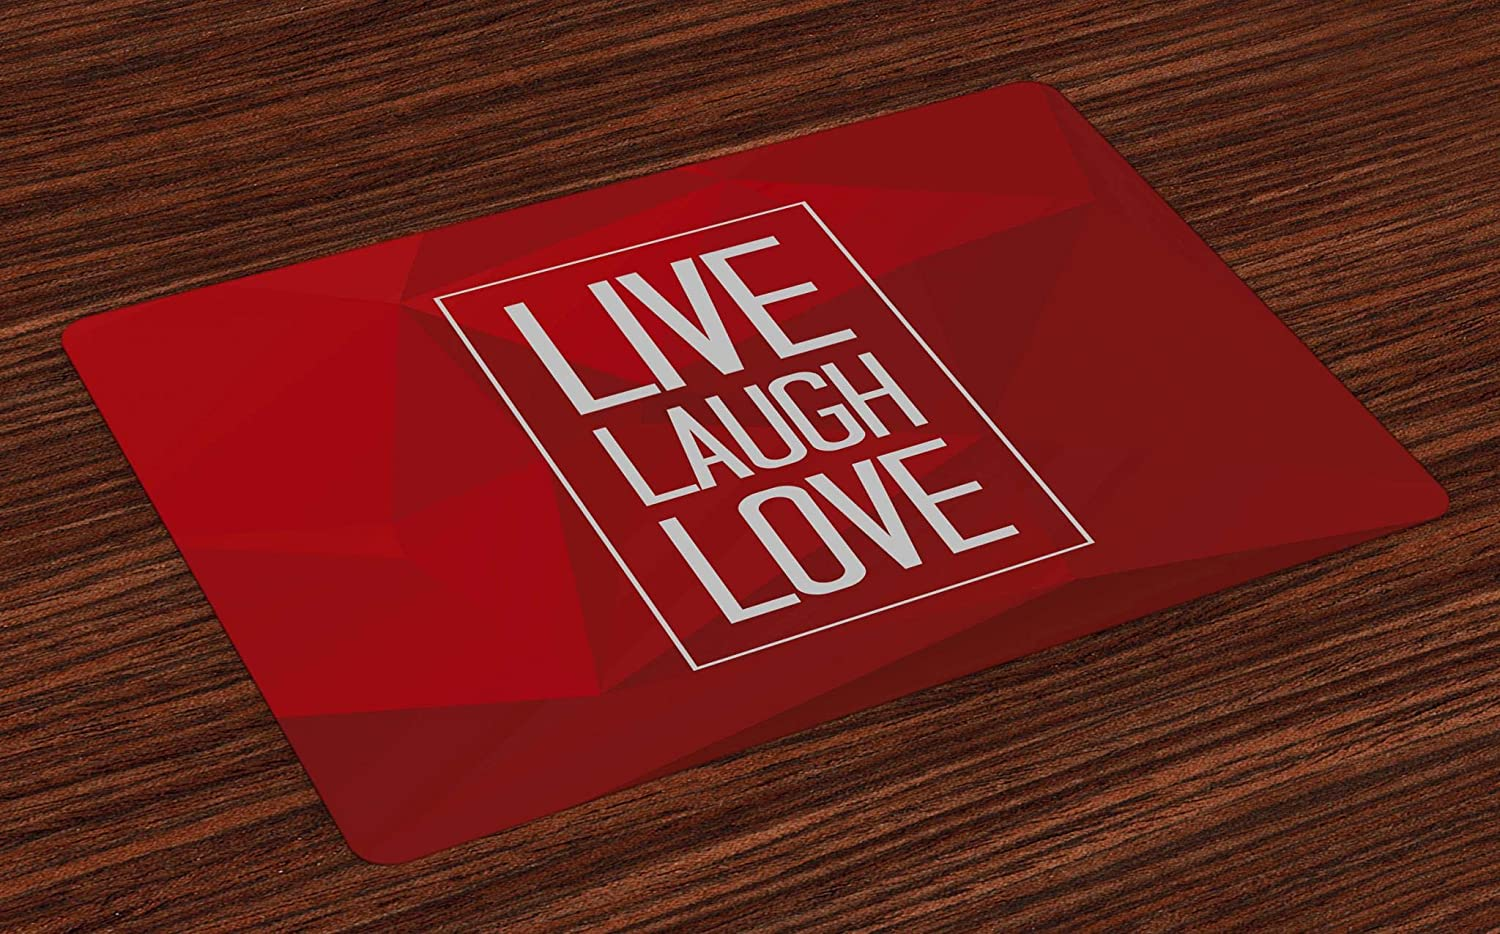 Ambesonne Live Laugh Love Place Mats Set of 4, Abstract Triangle Polygon Background with a Words in Rectangular Frame, Washable Fabric Placemats for Dining Room Kitchen Table Decor, White Red